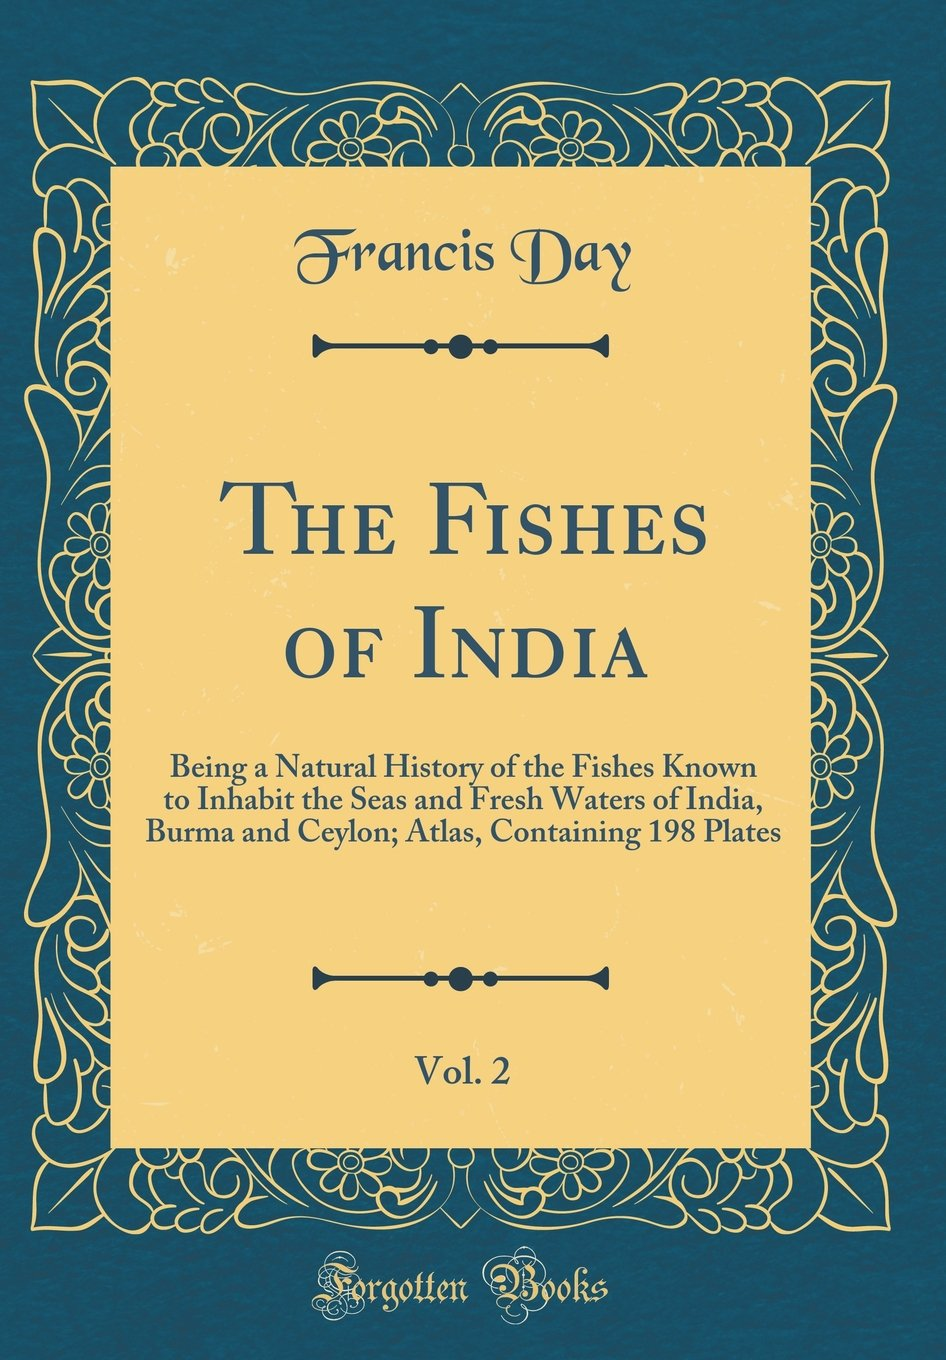 The Fishes of India, Vol. 2: Being a Natural History of the Fishes Known to Inhabit the Seas and Fresh Waters of India, Burma and Ceylon; Atlas, Containing 198 Plates (Classic Reprint)